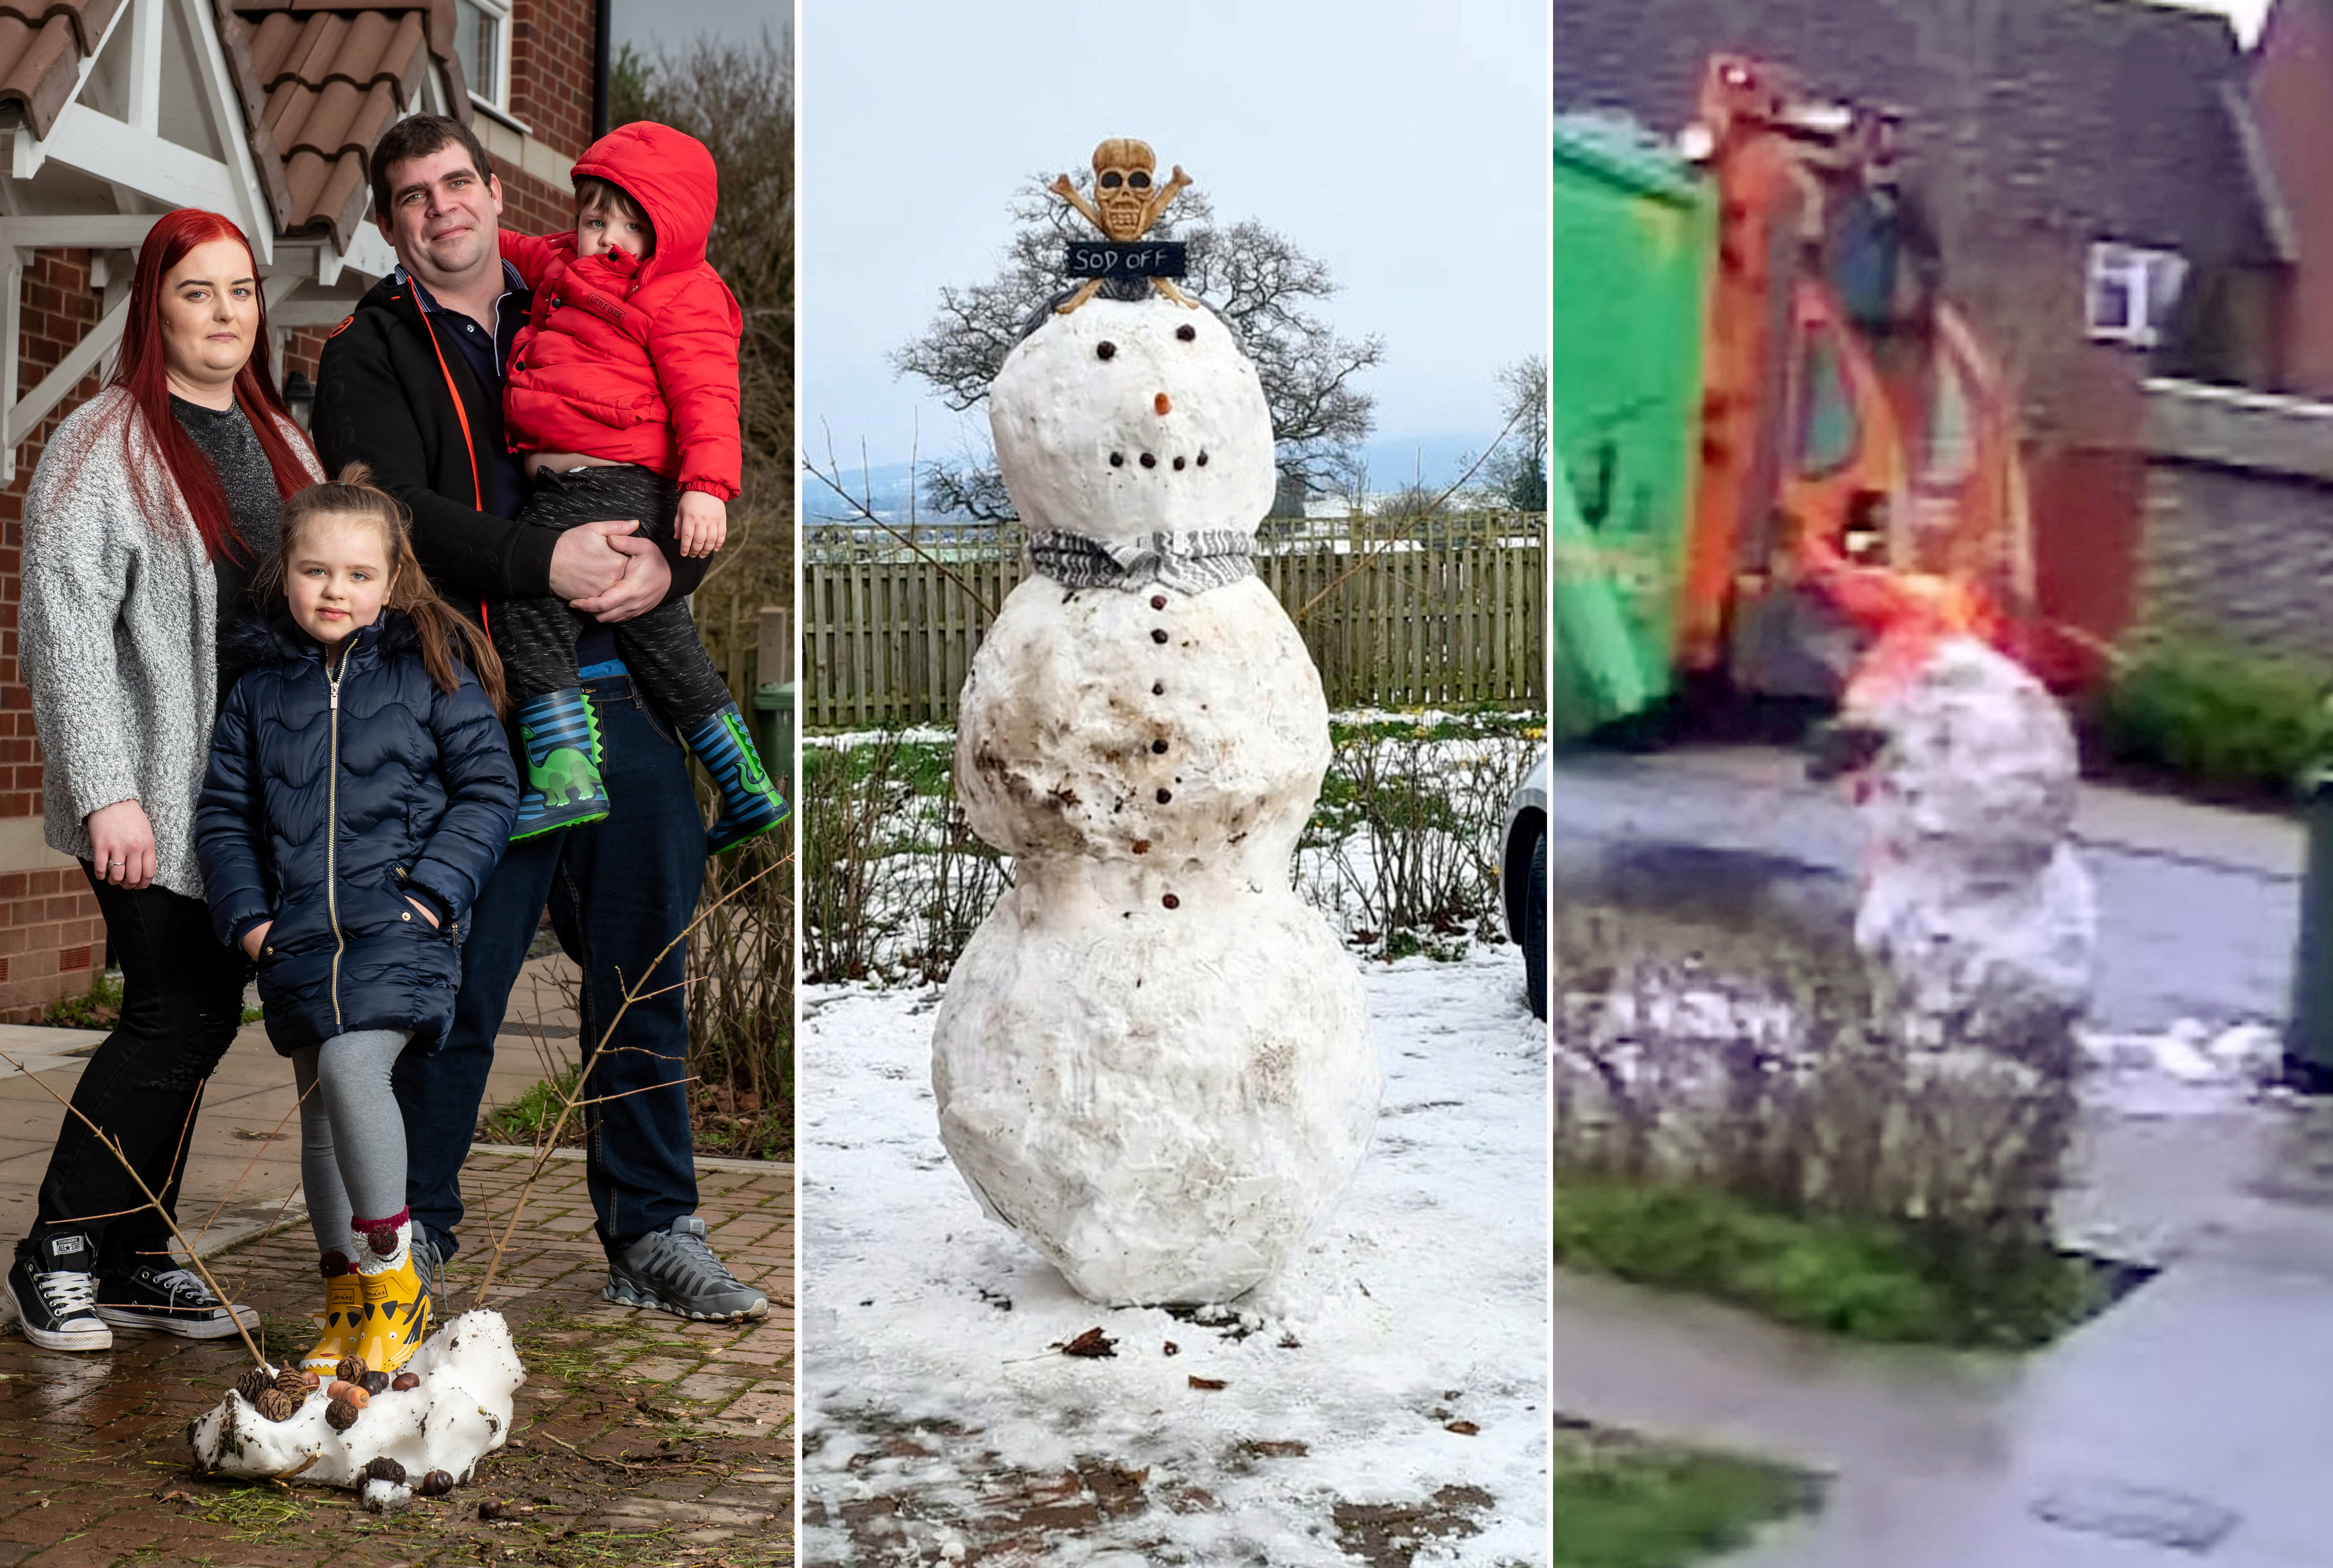 """A yob binman who was sacked after being caught on CCTV kicking over a child's snowman has refused to apologise - branding the boy's parents """"snowflakes""""."""